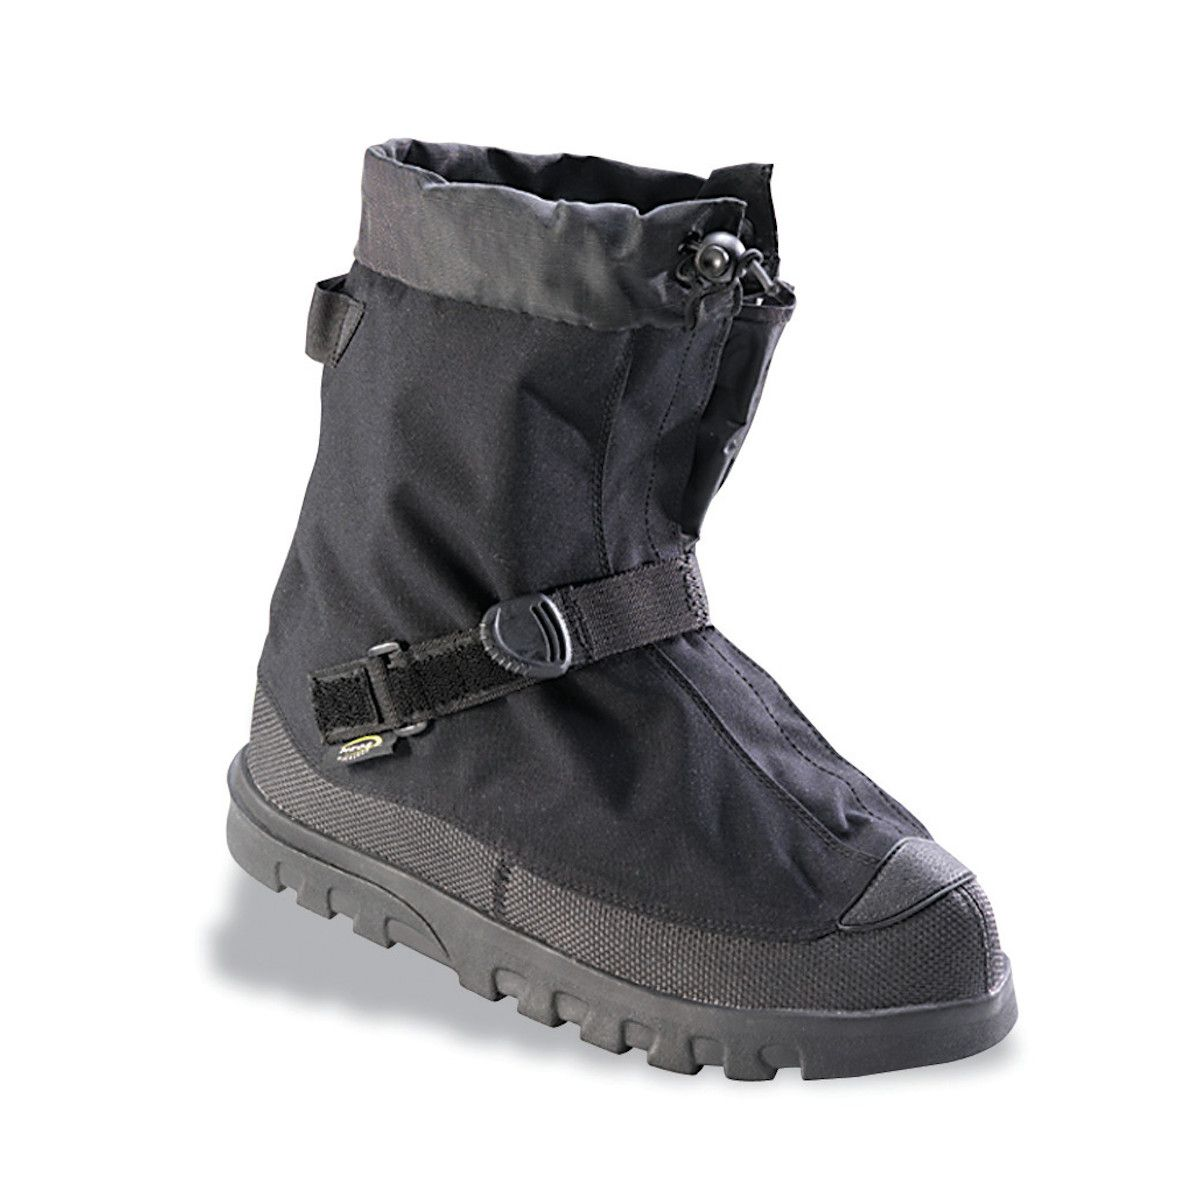 HS_neos_voyager_mid_overshoe_neos_vnn1blk